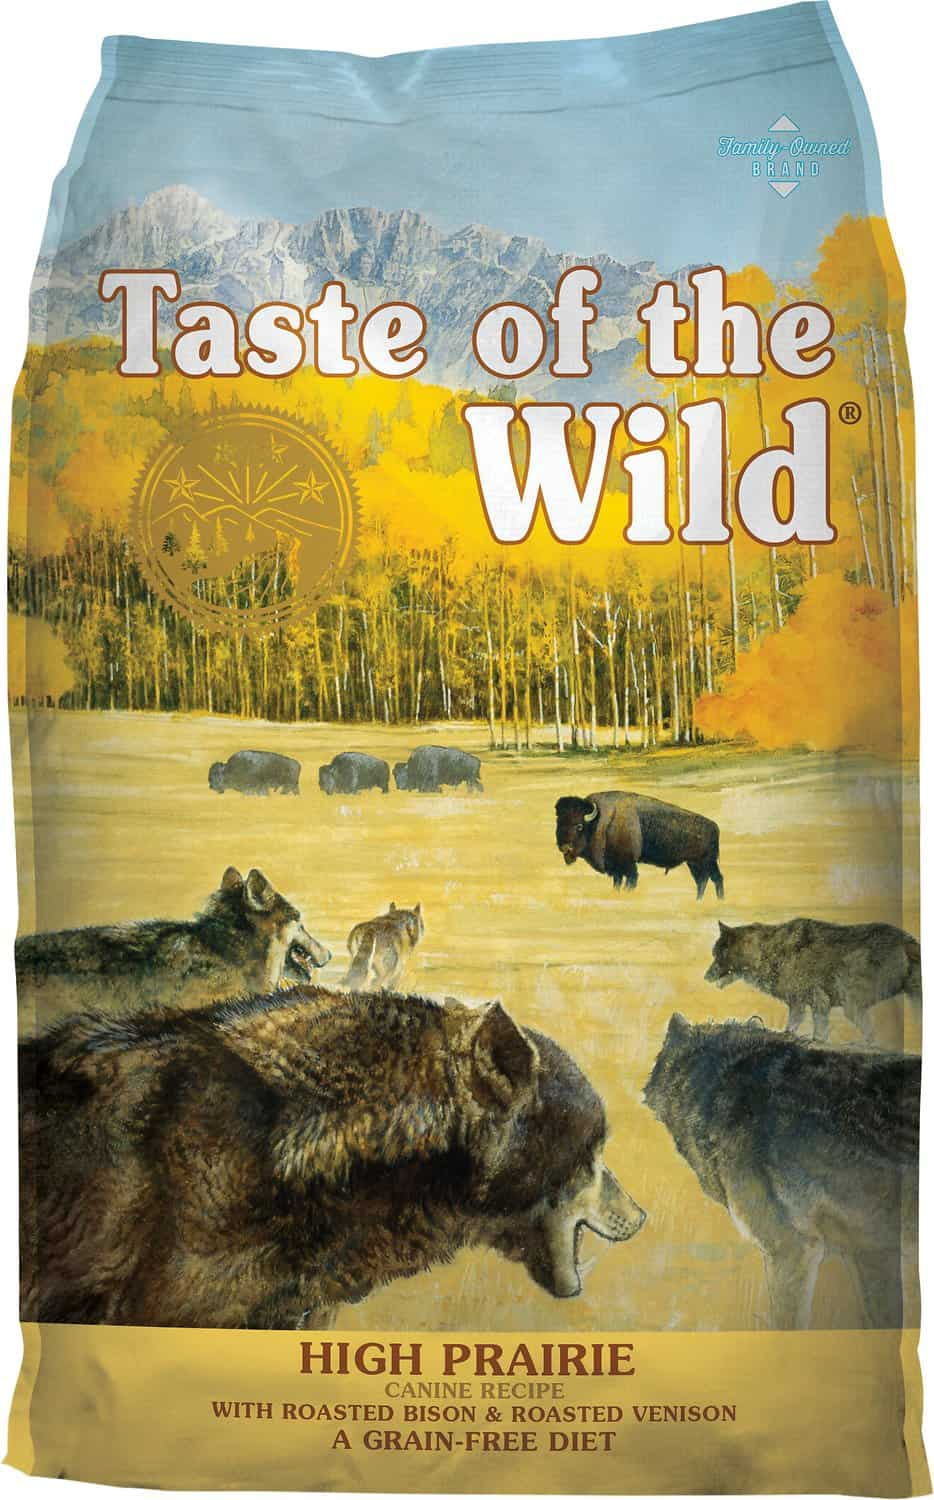 Best Taste of the Wild Dog Foods: Our 2021 Reviews & Coupons 20